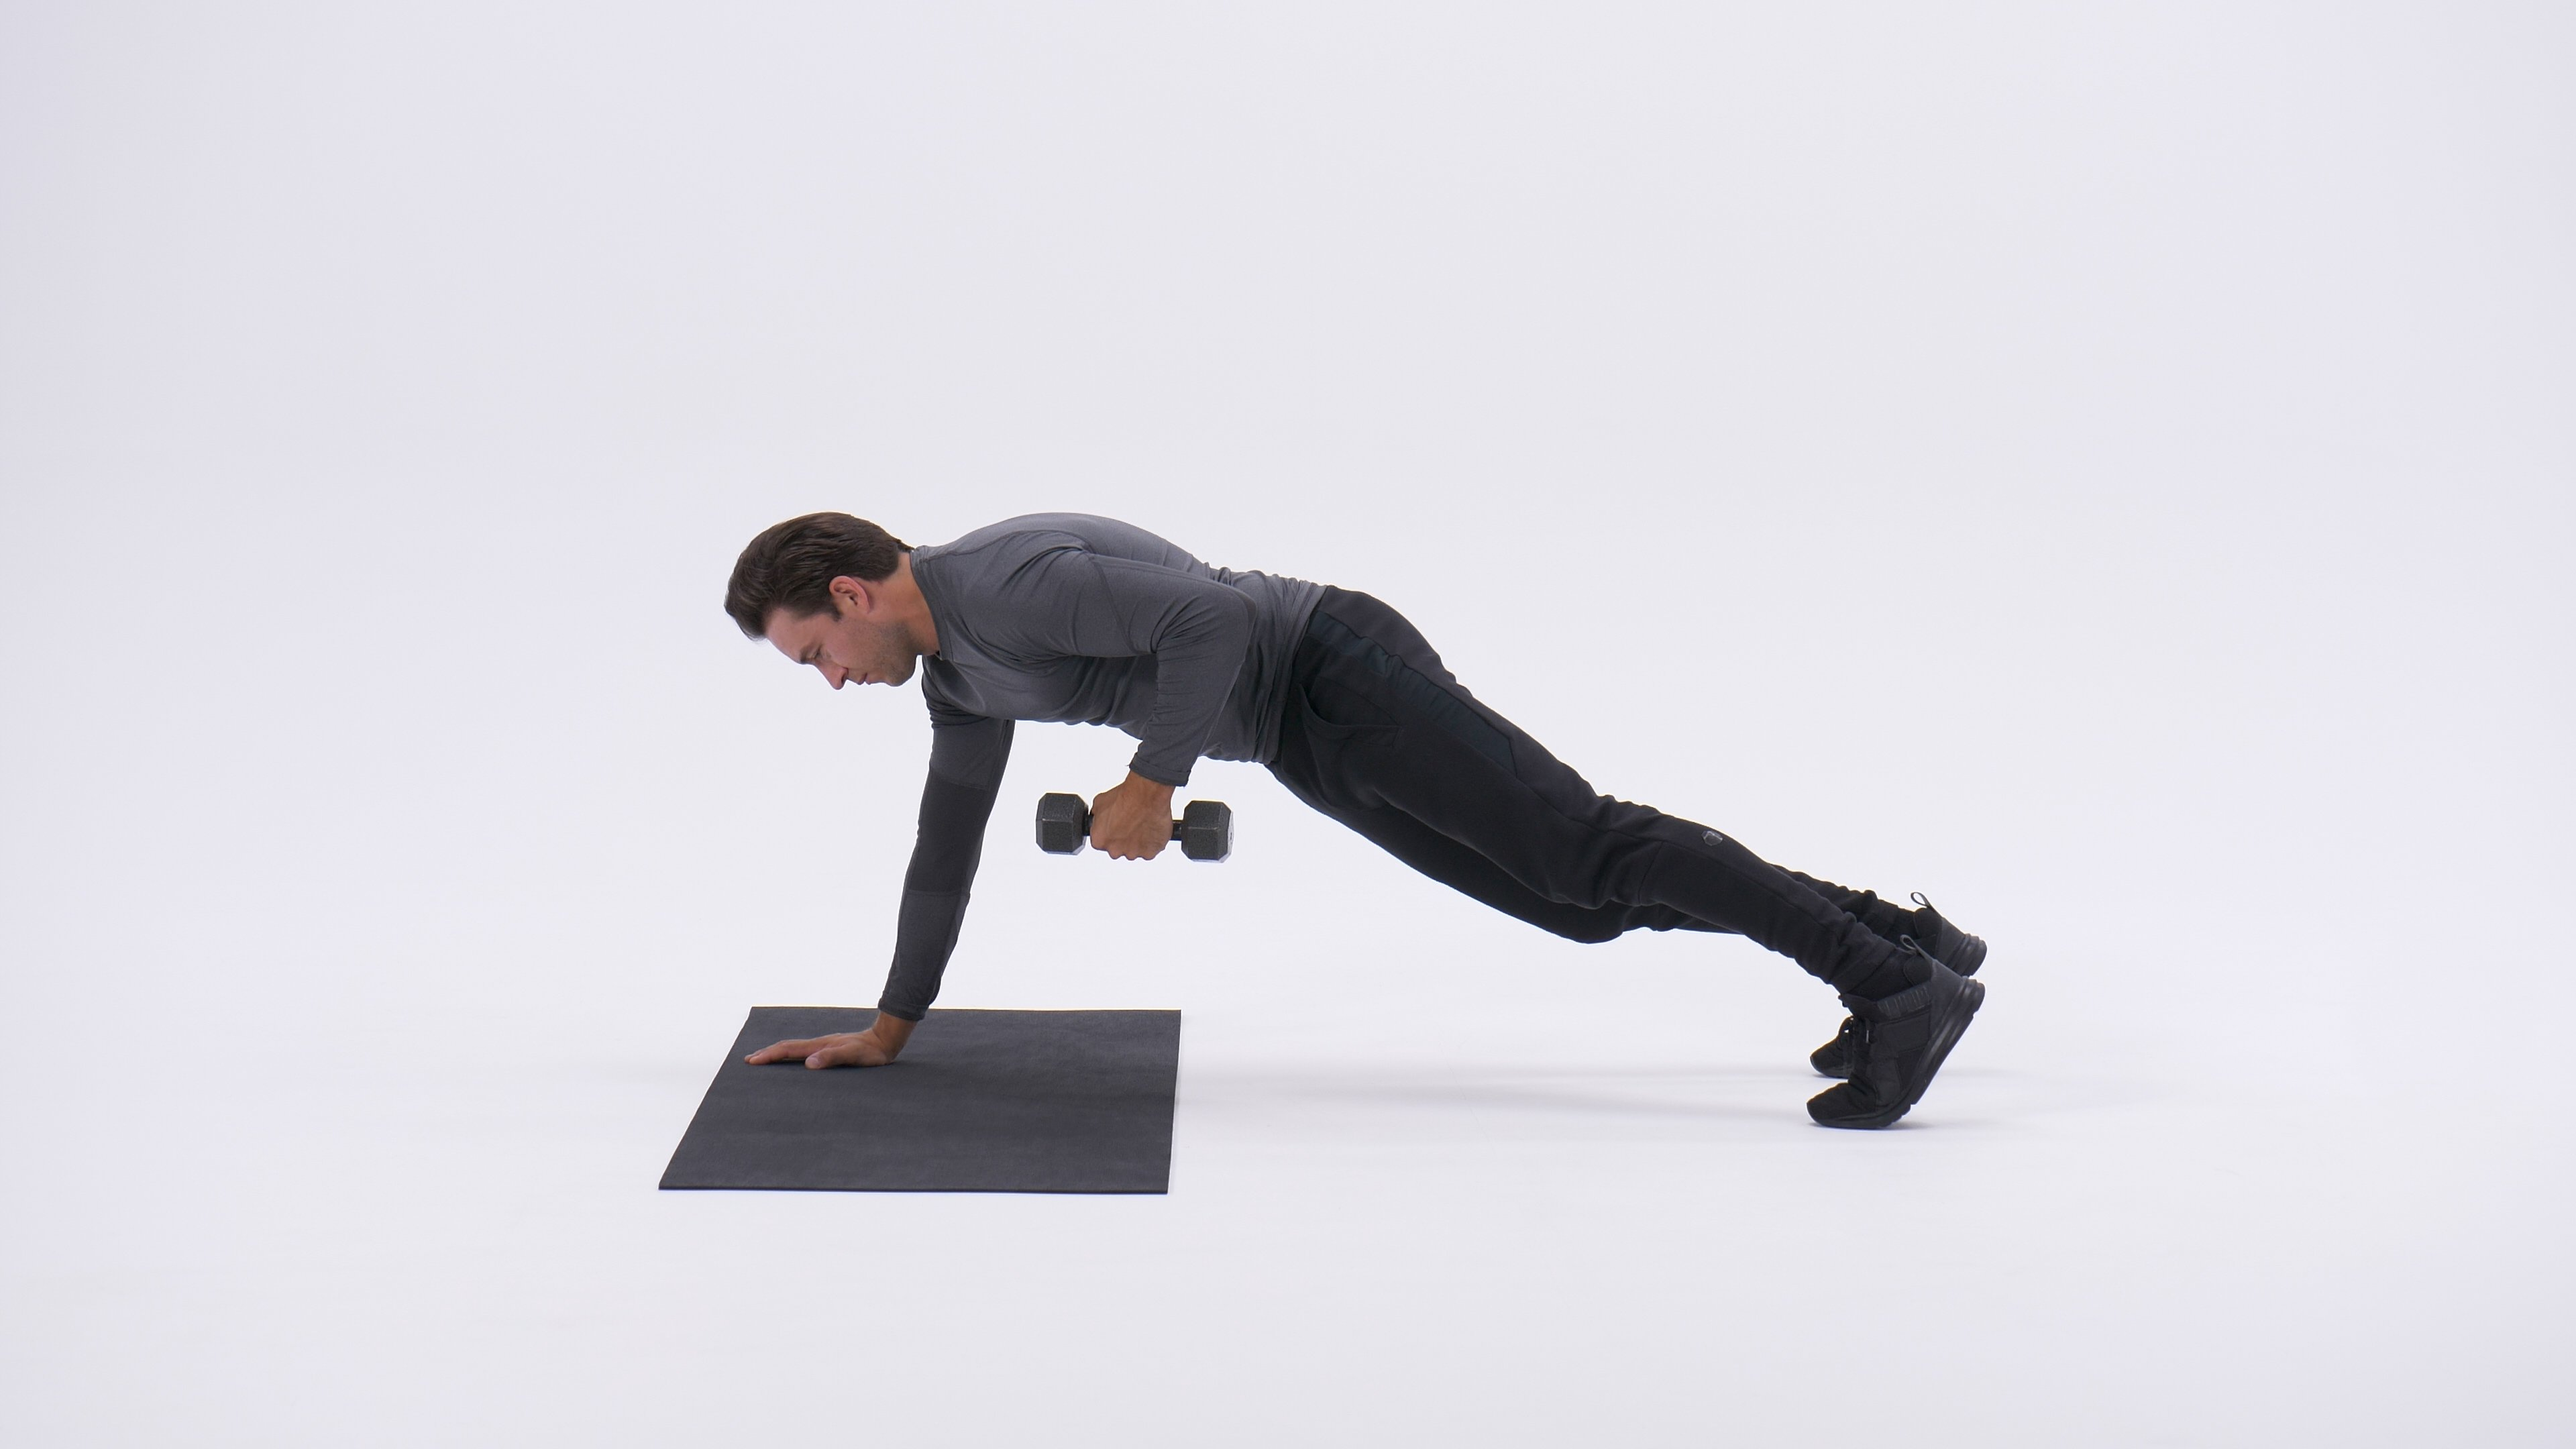 Straight-arm plank with kick-back image